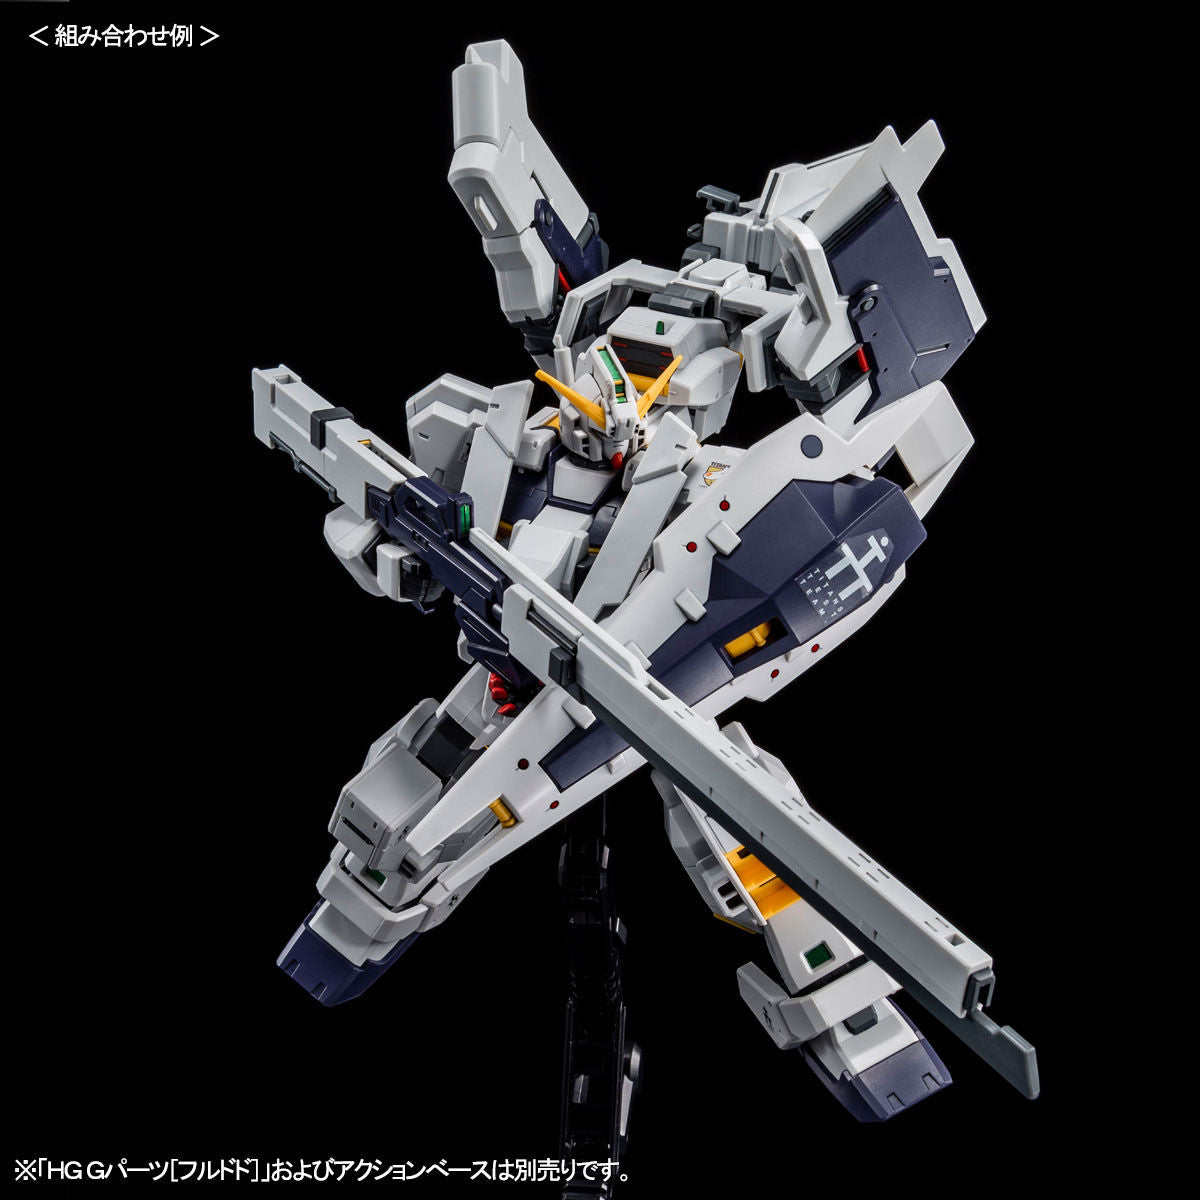 P-BANDAI: HGUC 1/144 HAZEL CUSTOM WITH GUNDAM TR-6 CONVERSION PARTS [End of December]